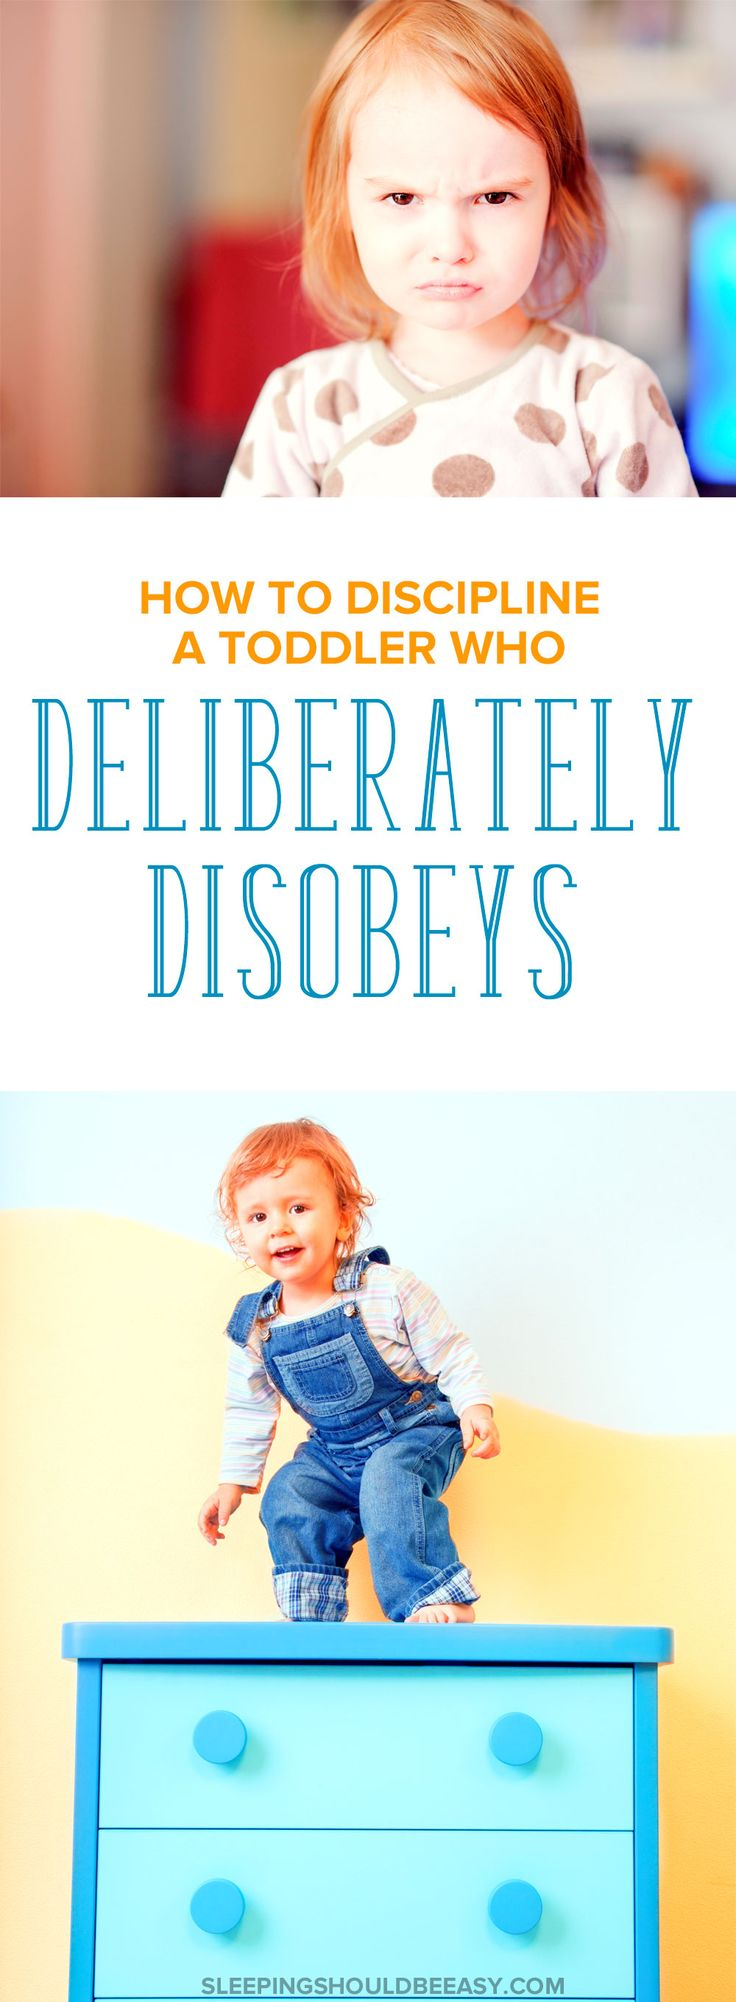 Simple tips on how to discipline your toddler when he or she deliberately disobeys. Get ideas on effective but simple ways to discipline when your kids misbehave on purpose.